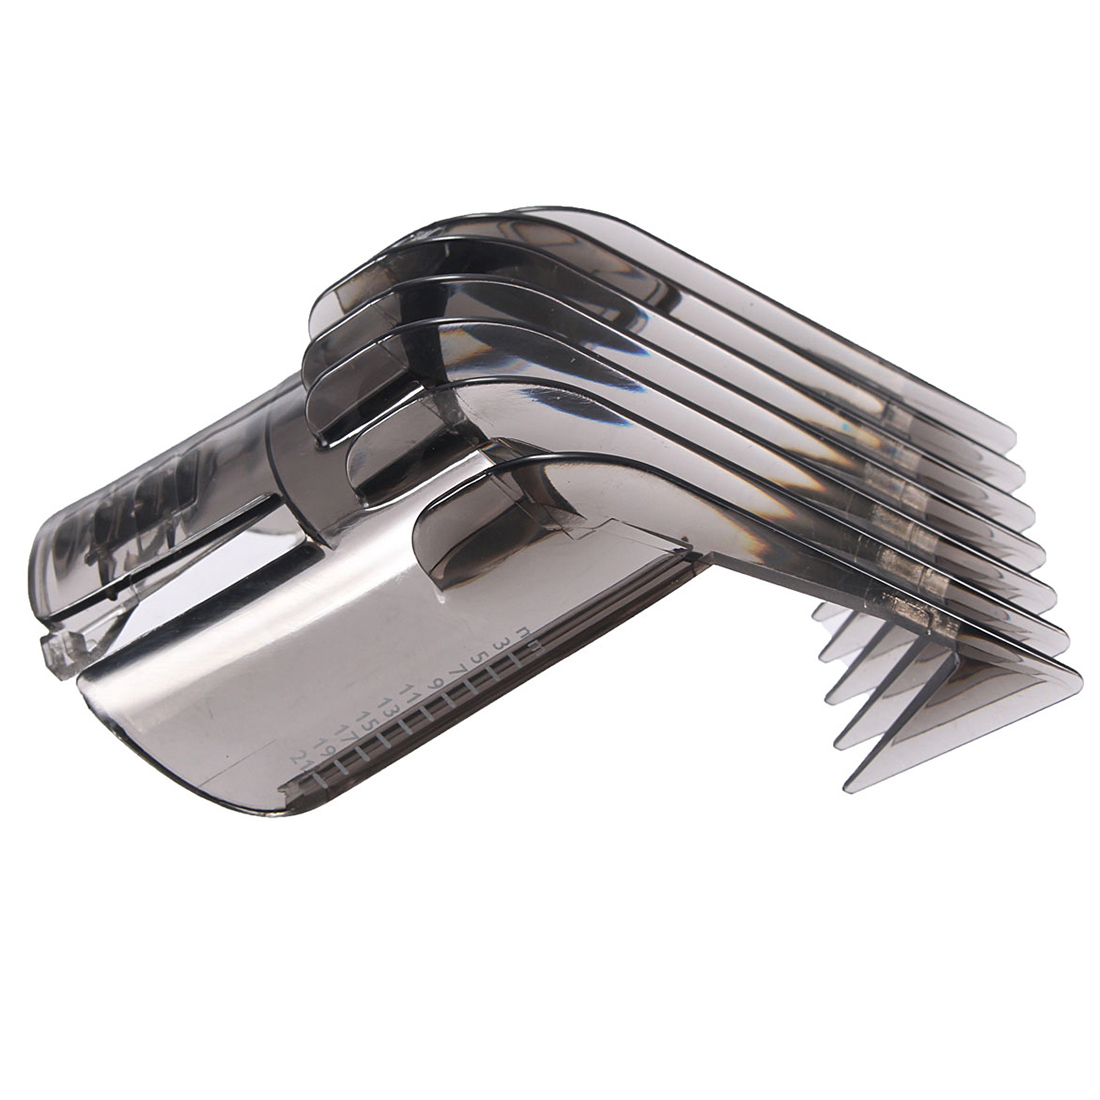 Hair Clipper Guide Comb Beard Trimmer Comb 3-21mm Razor Attachment Tools For Philips QC5130 / 05/15/20/25/35 Adjustable